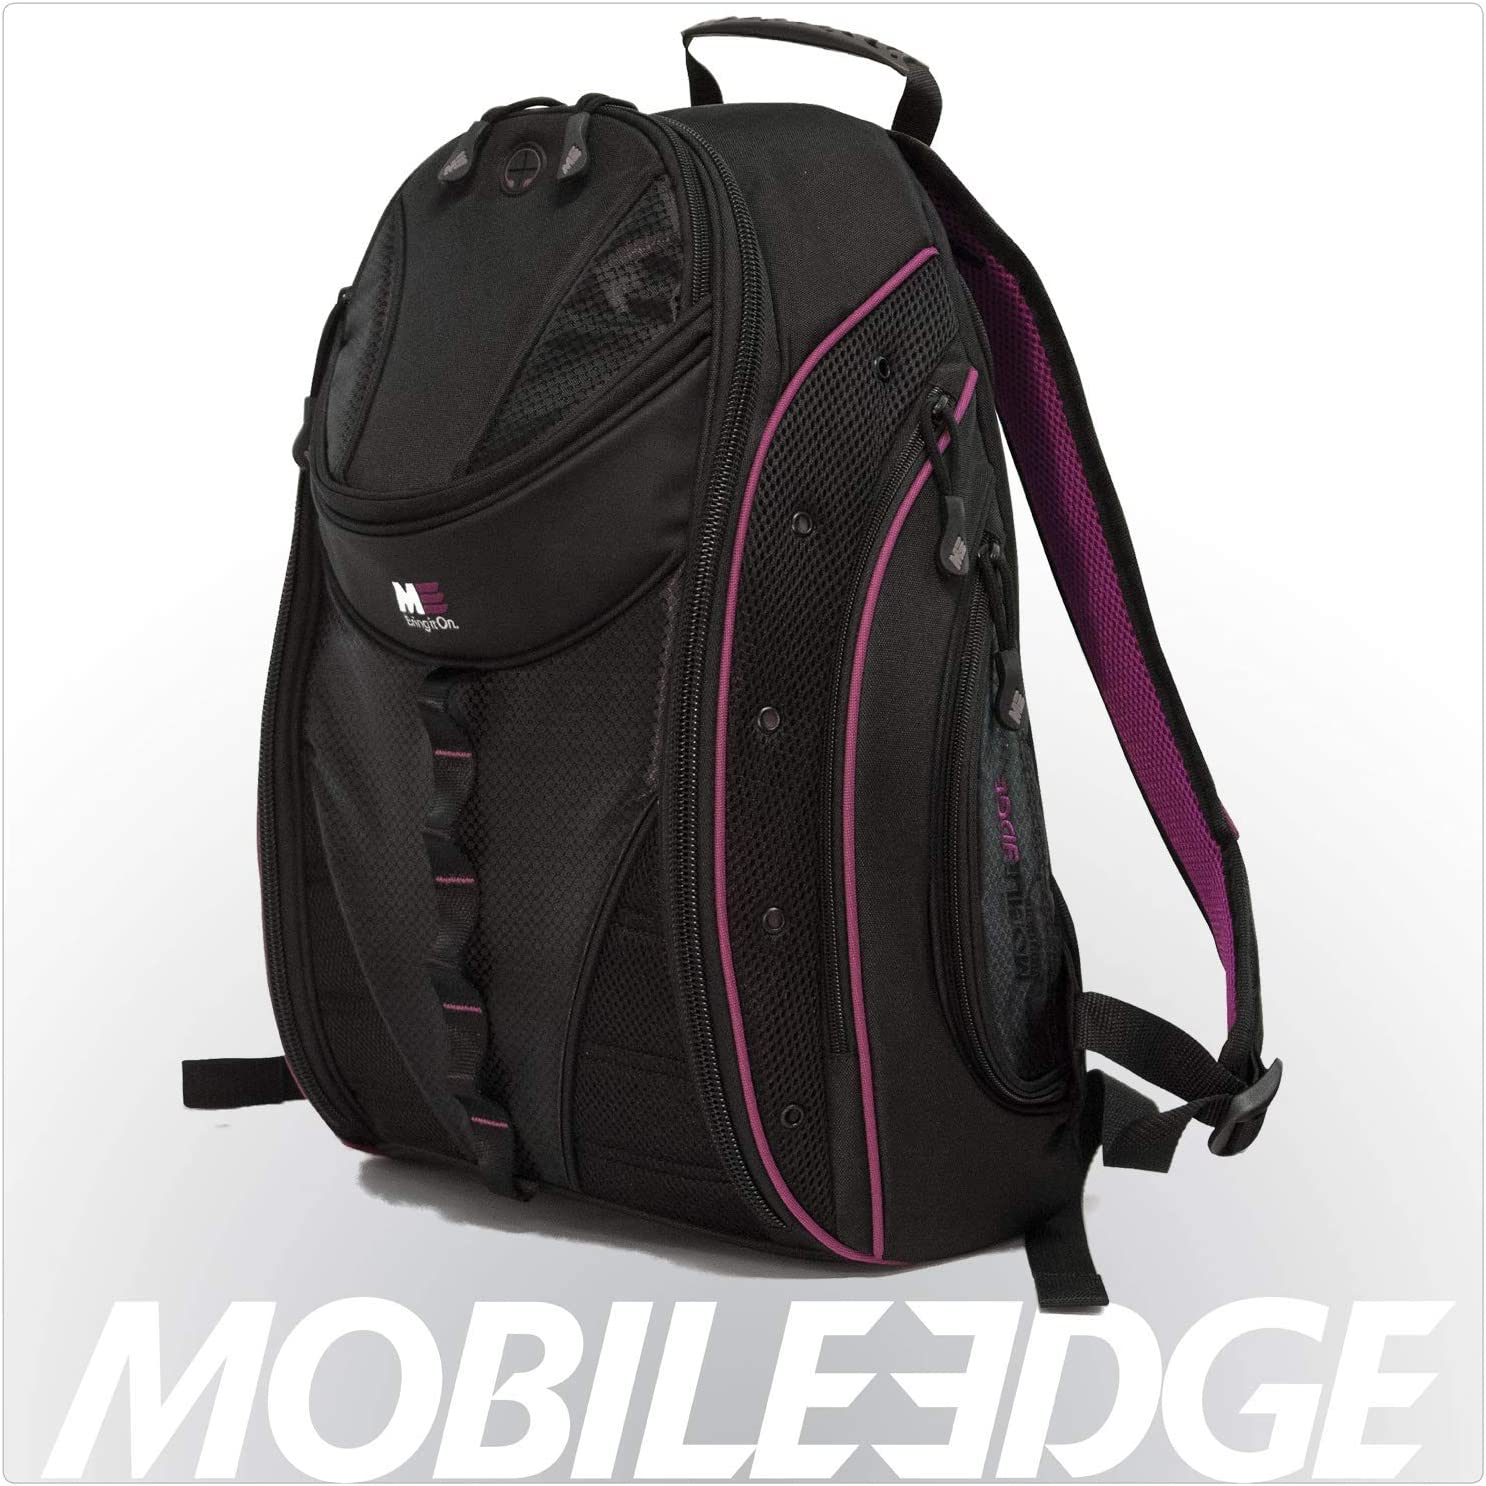 Mobile Edge Express Laptop Backpack 2.0 16 Inch PC, 17 Inch Mac Black with Lavender Trim for Men, Women, Students MEBPE82